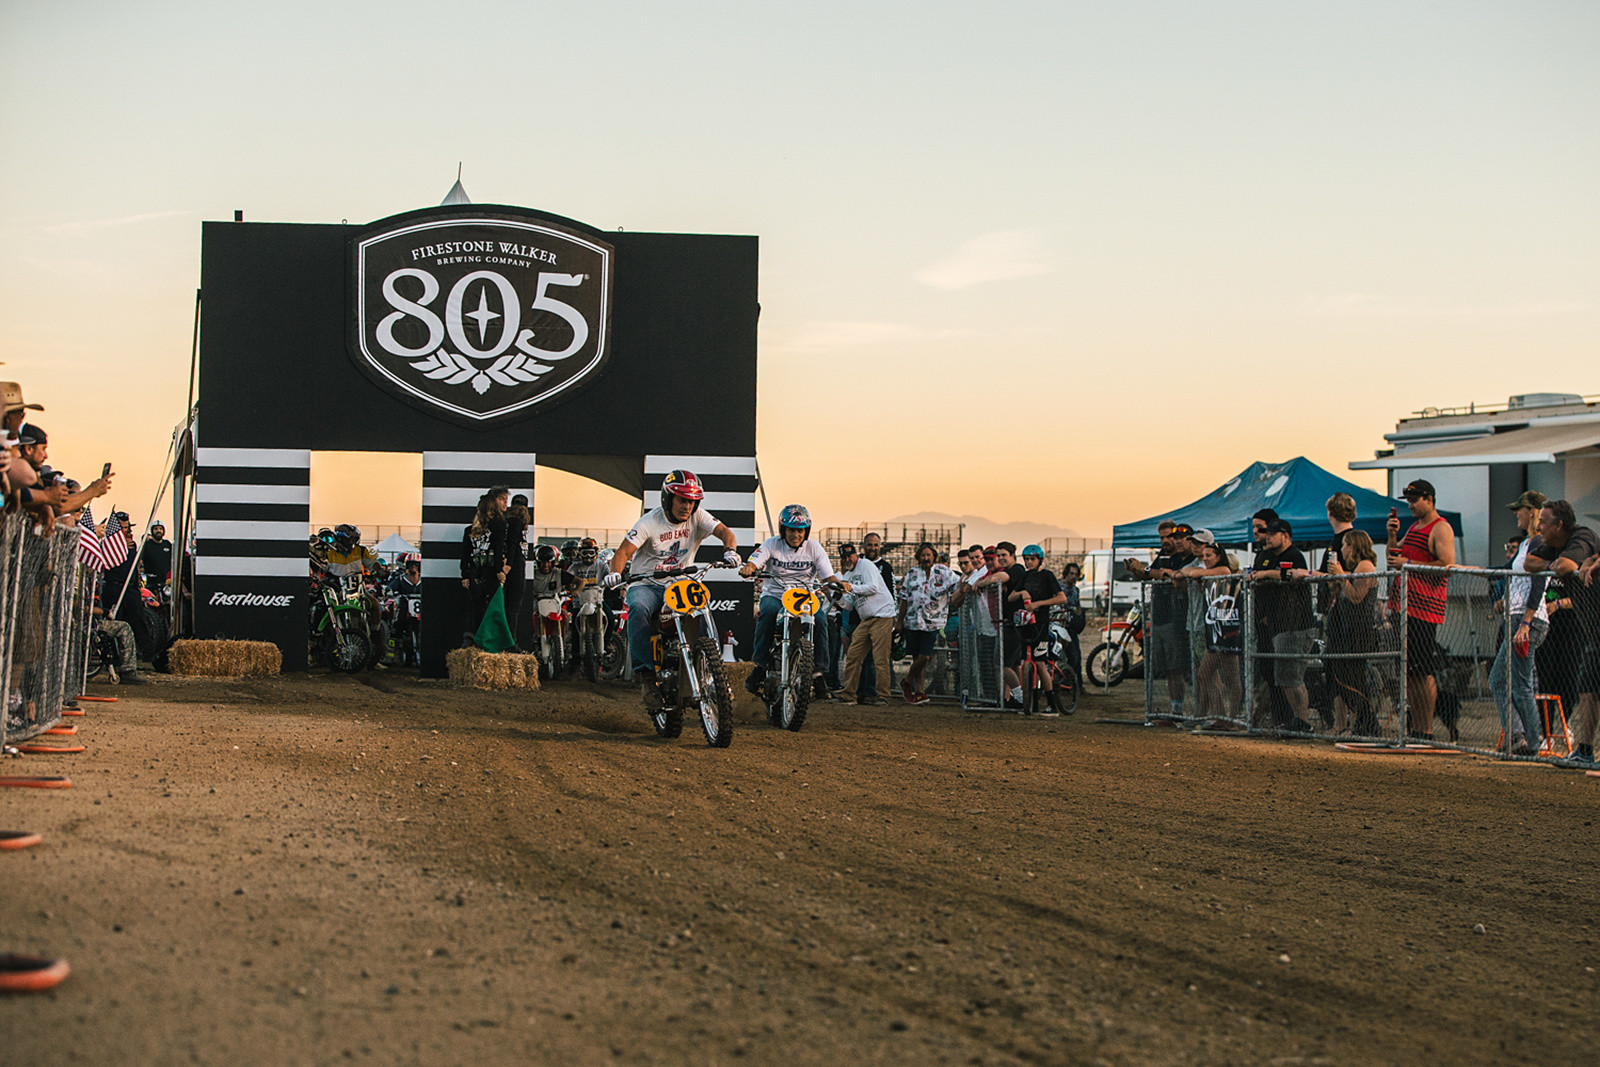 You'll see everything from minis to dirt-modded V-twins lining up to blast down the dirt strip.